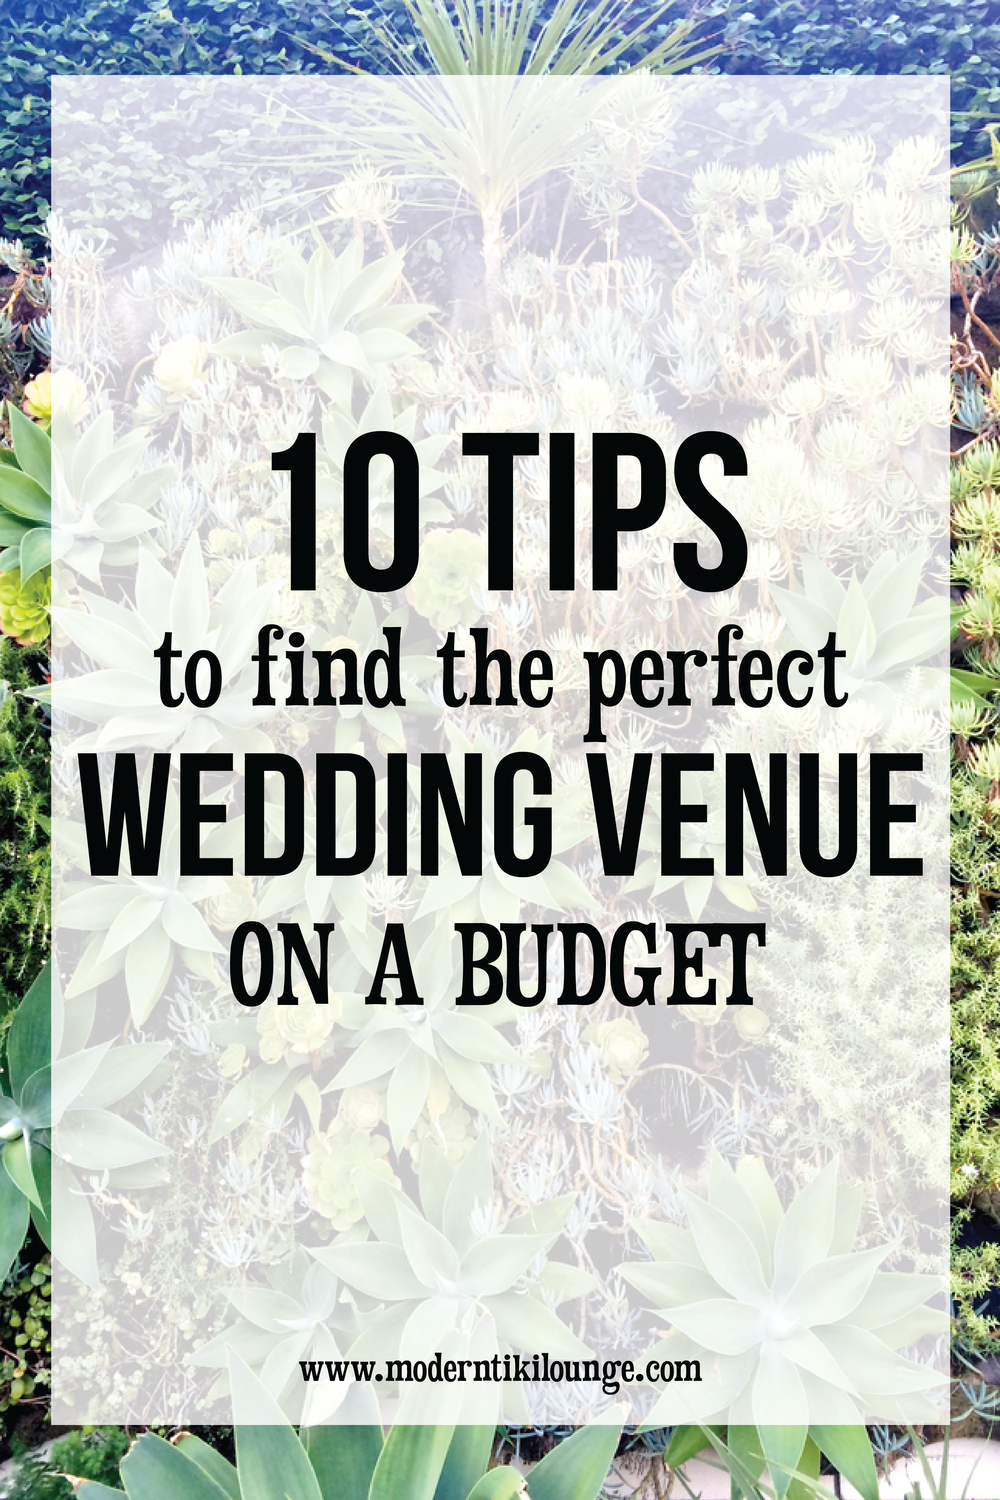 10-tips-to-find-the-perfect-wedding-venue-on-a-budget.jpg